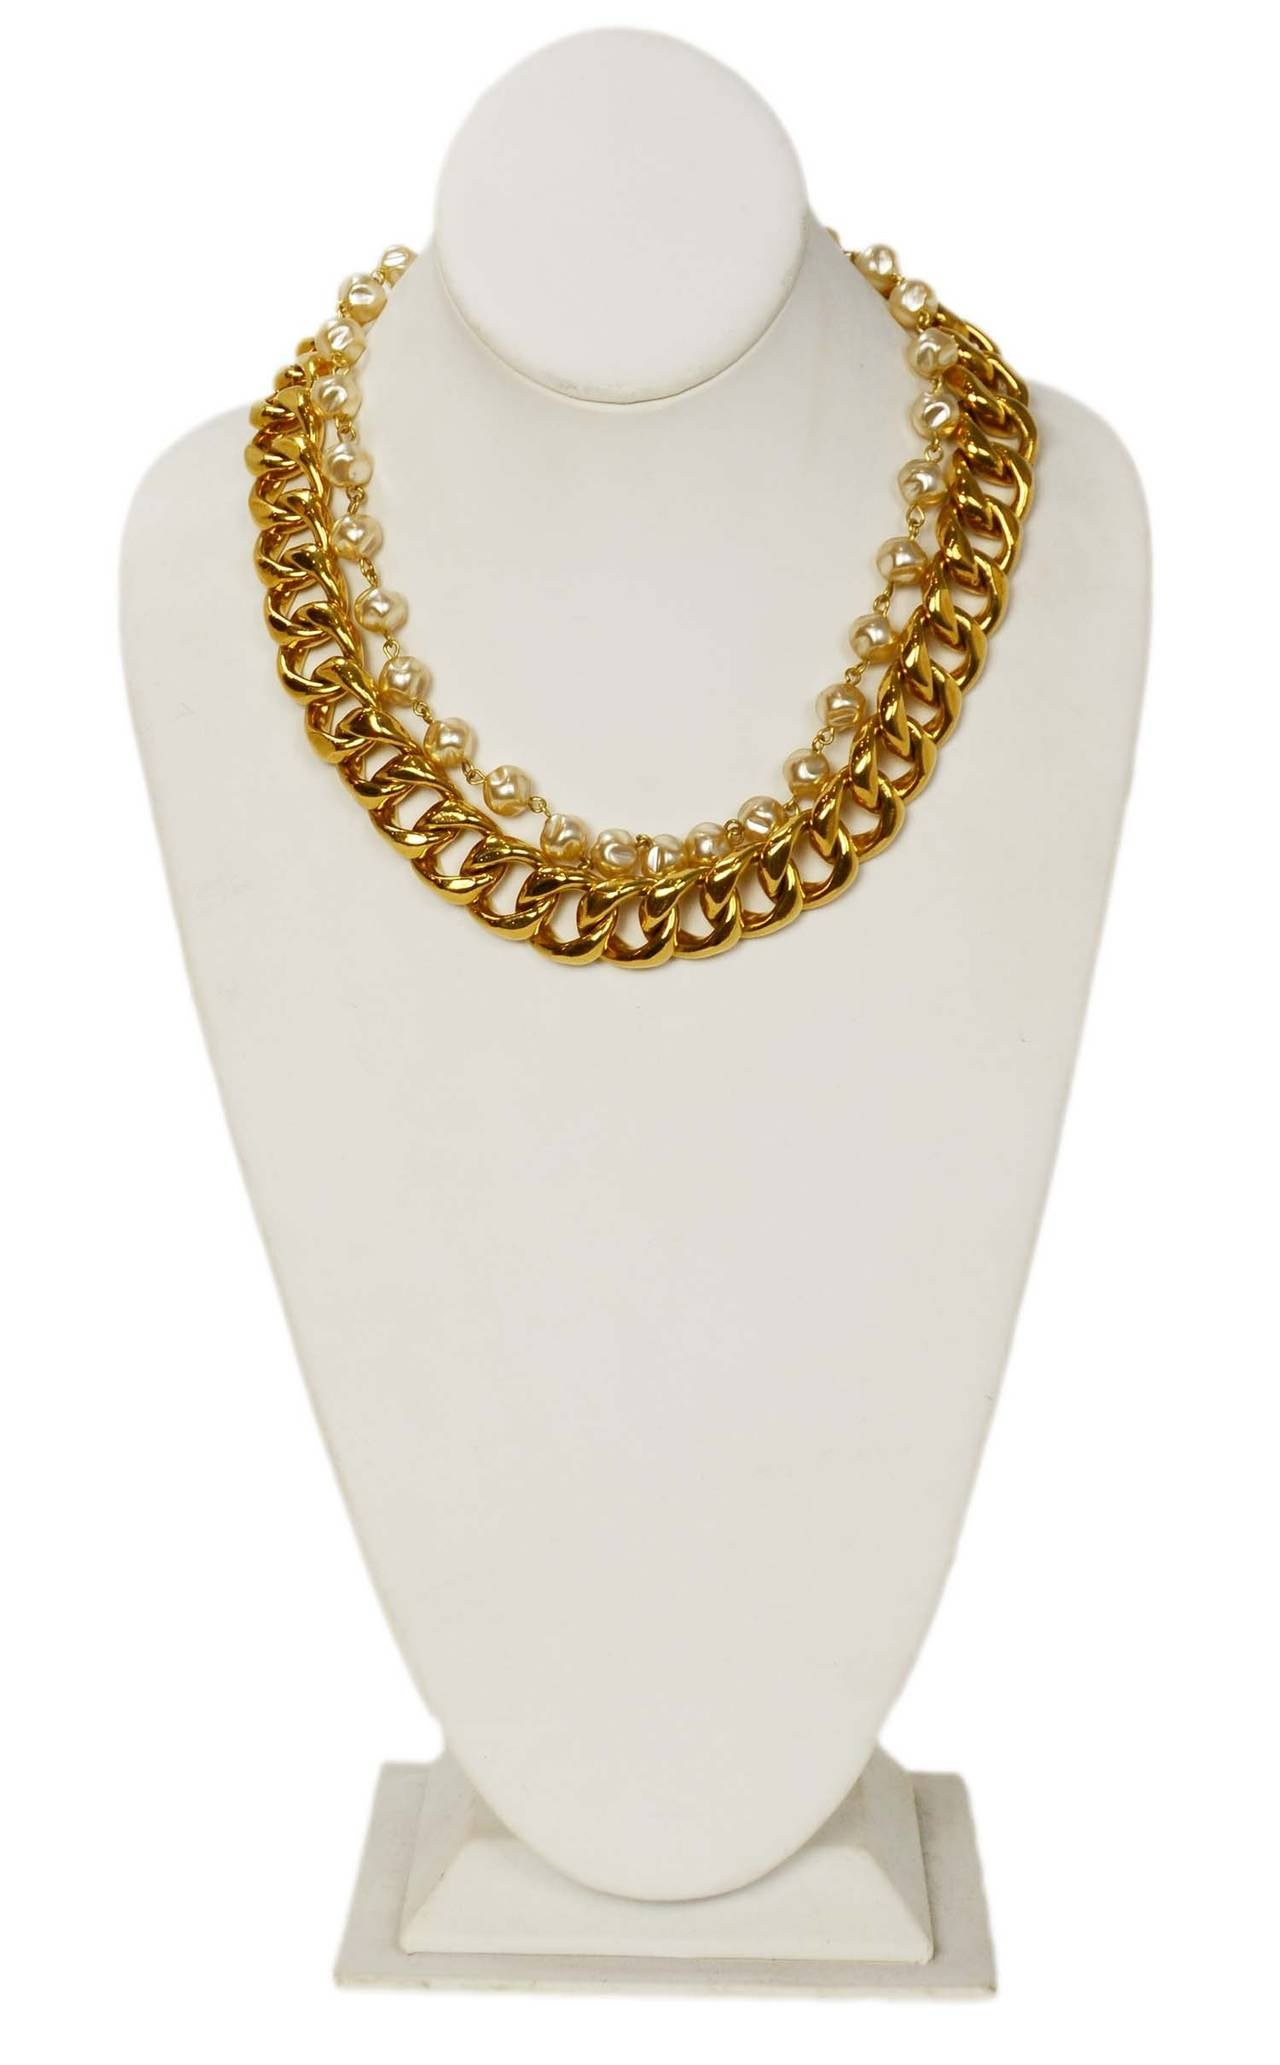 Chanel Vintage Goldtone Chain Link & Small Pearl Choker Necklace 2